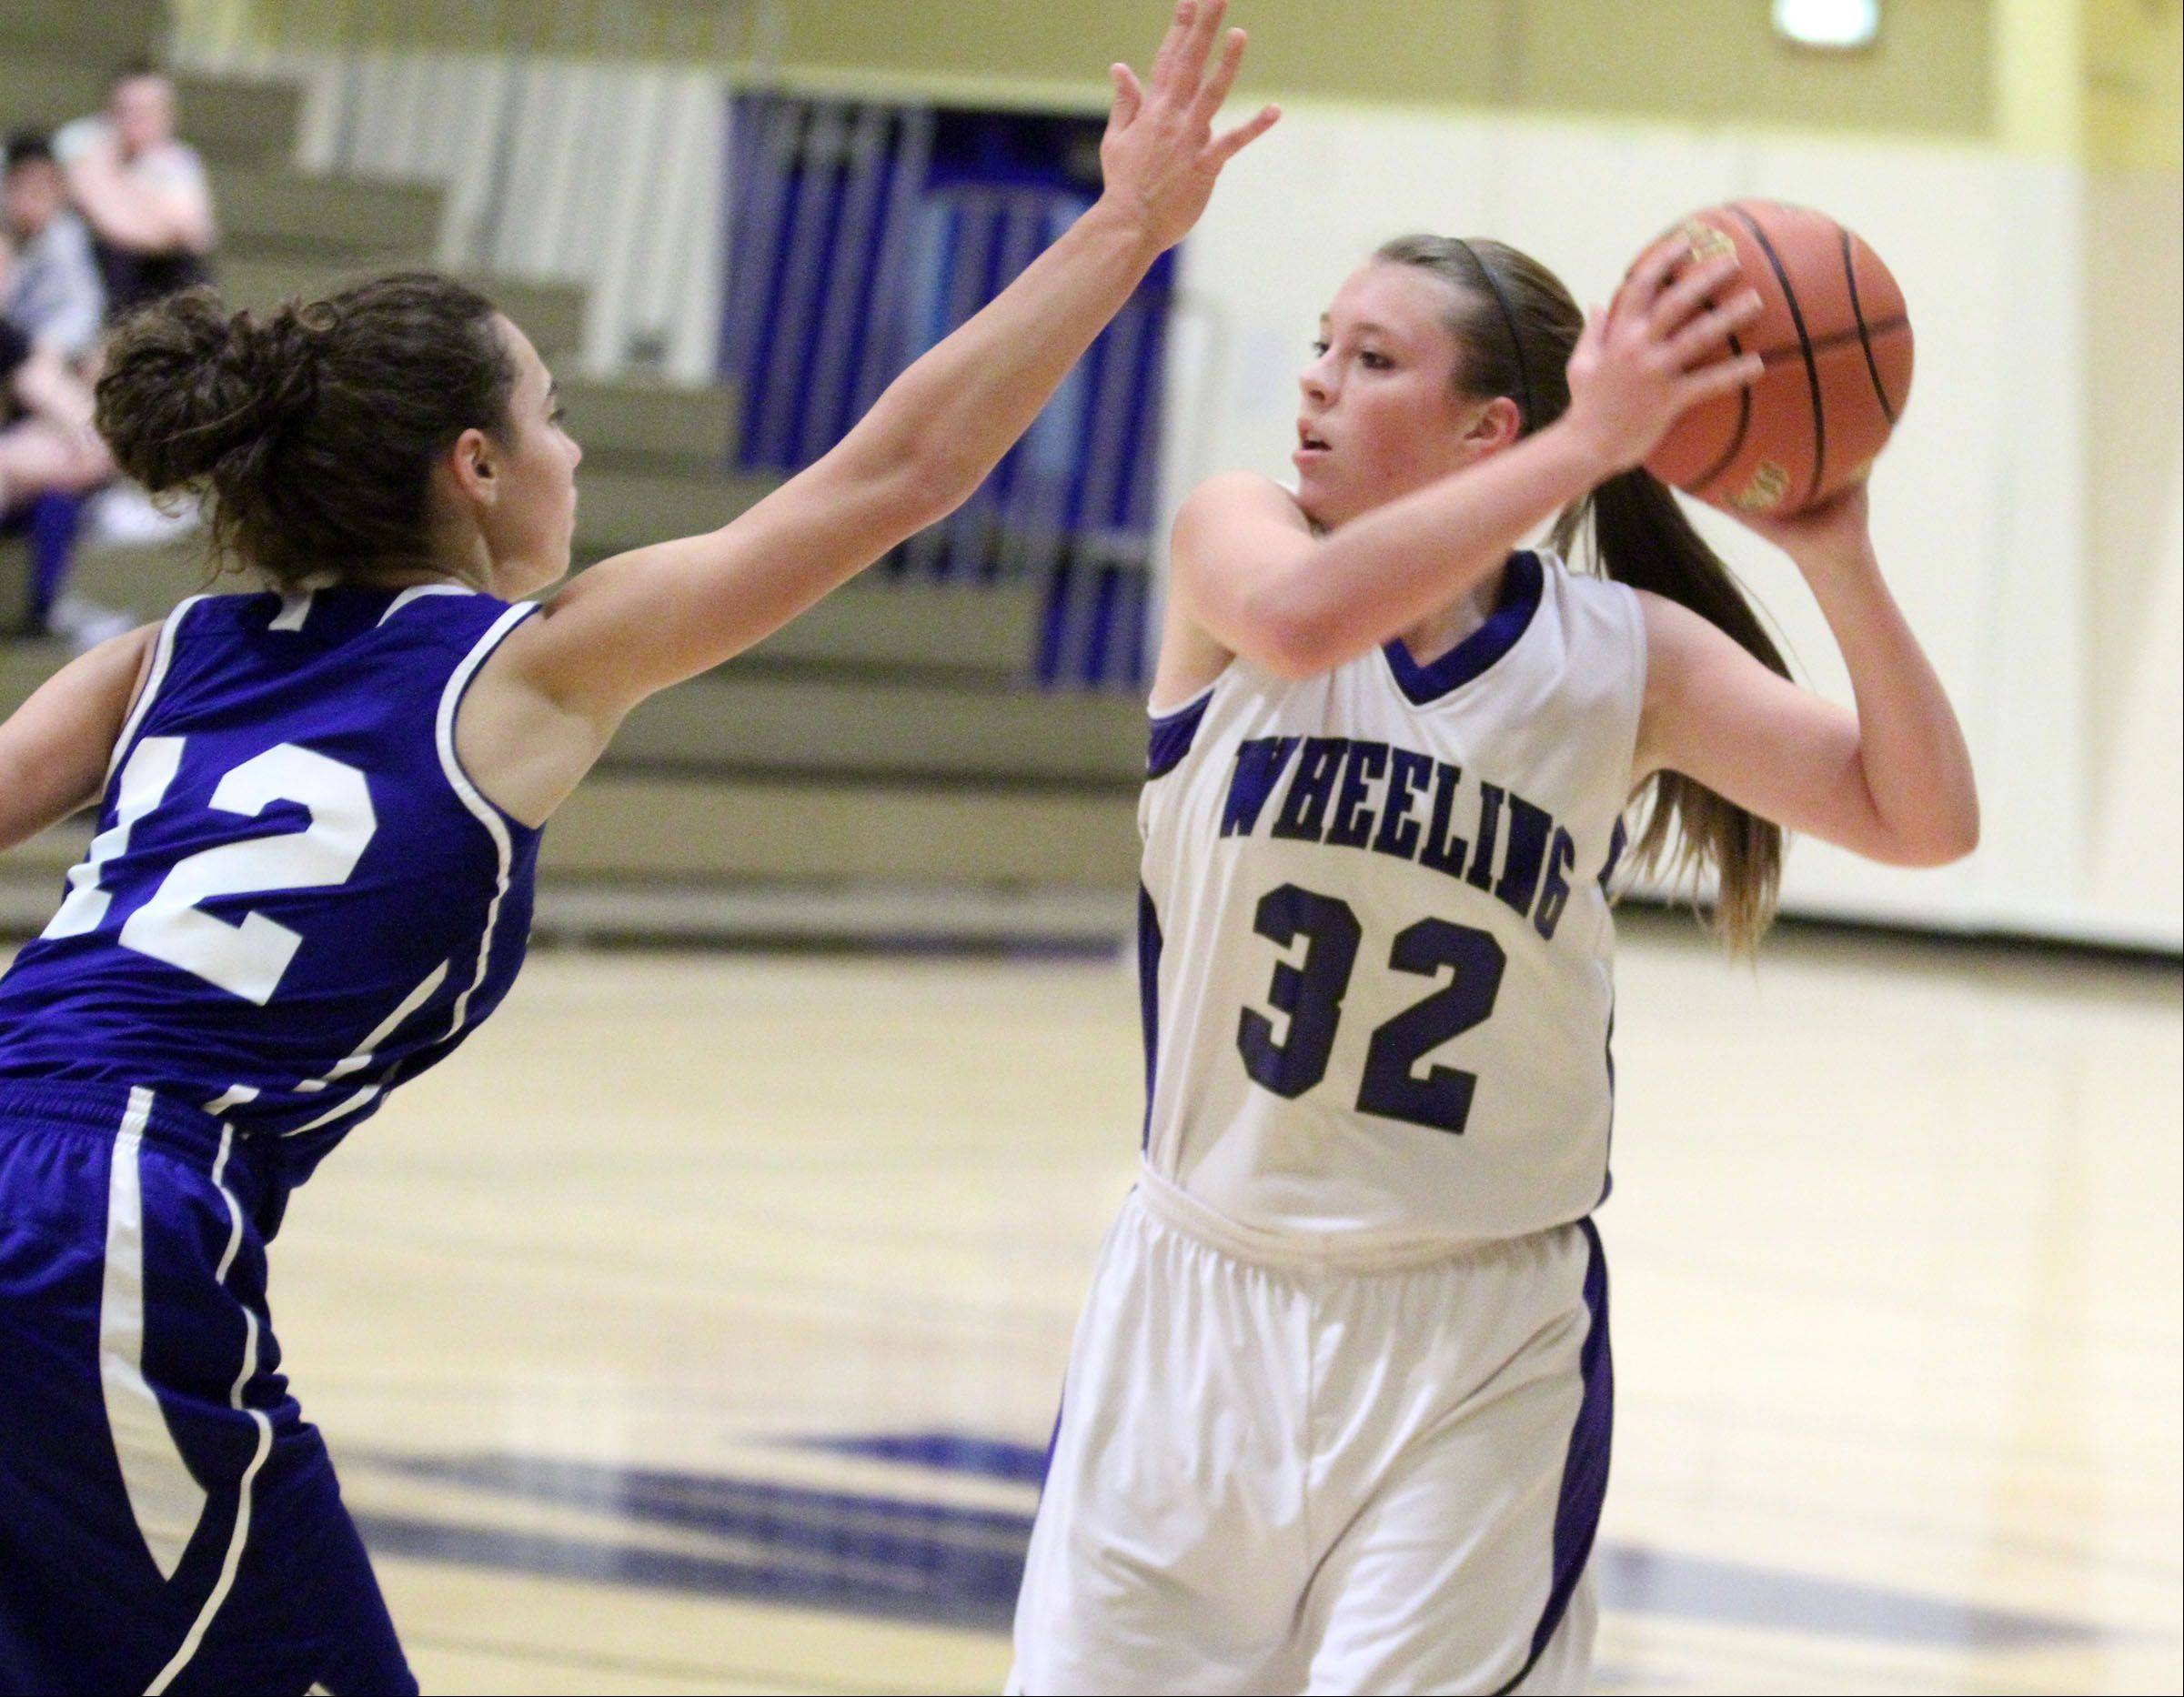 Wheeling�s Brie Majkowski looks to pass over Highland Park defender Tina Berardi.